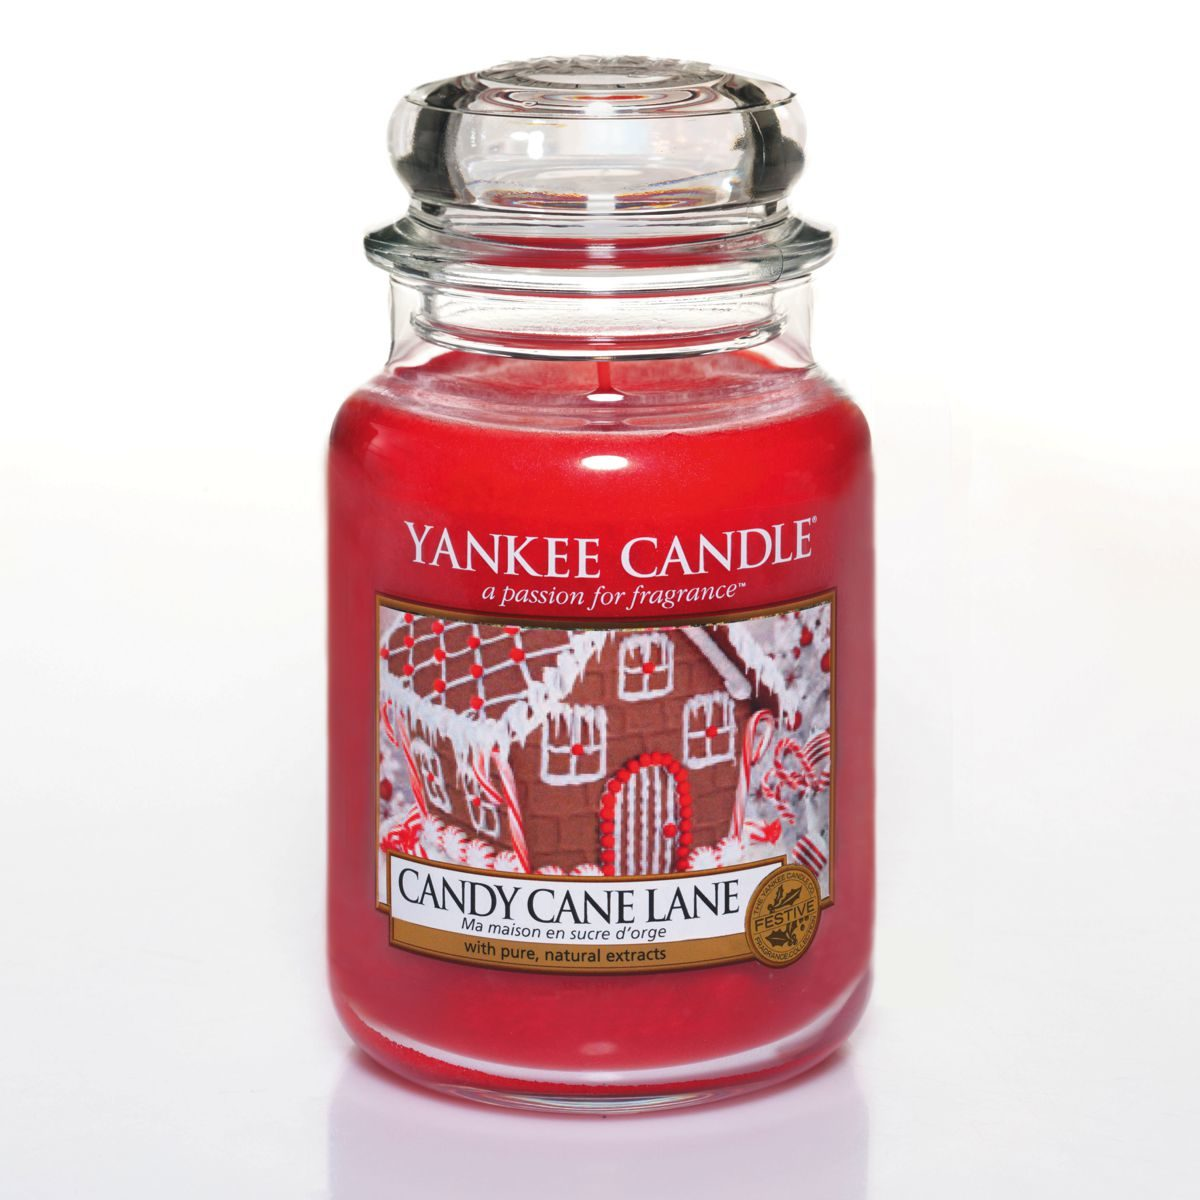 Yankee candle fragranze del mese di dicembre 2016 for Mobili yankee candle